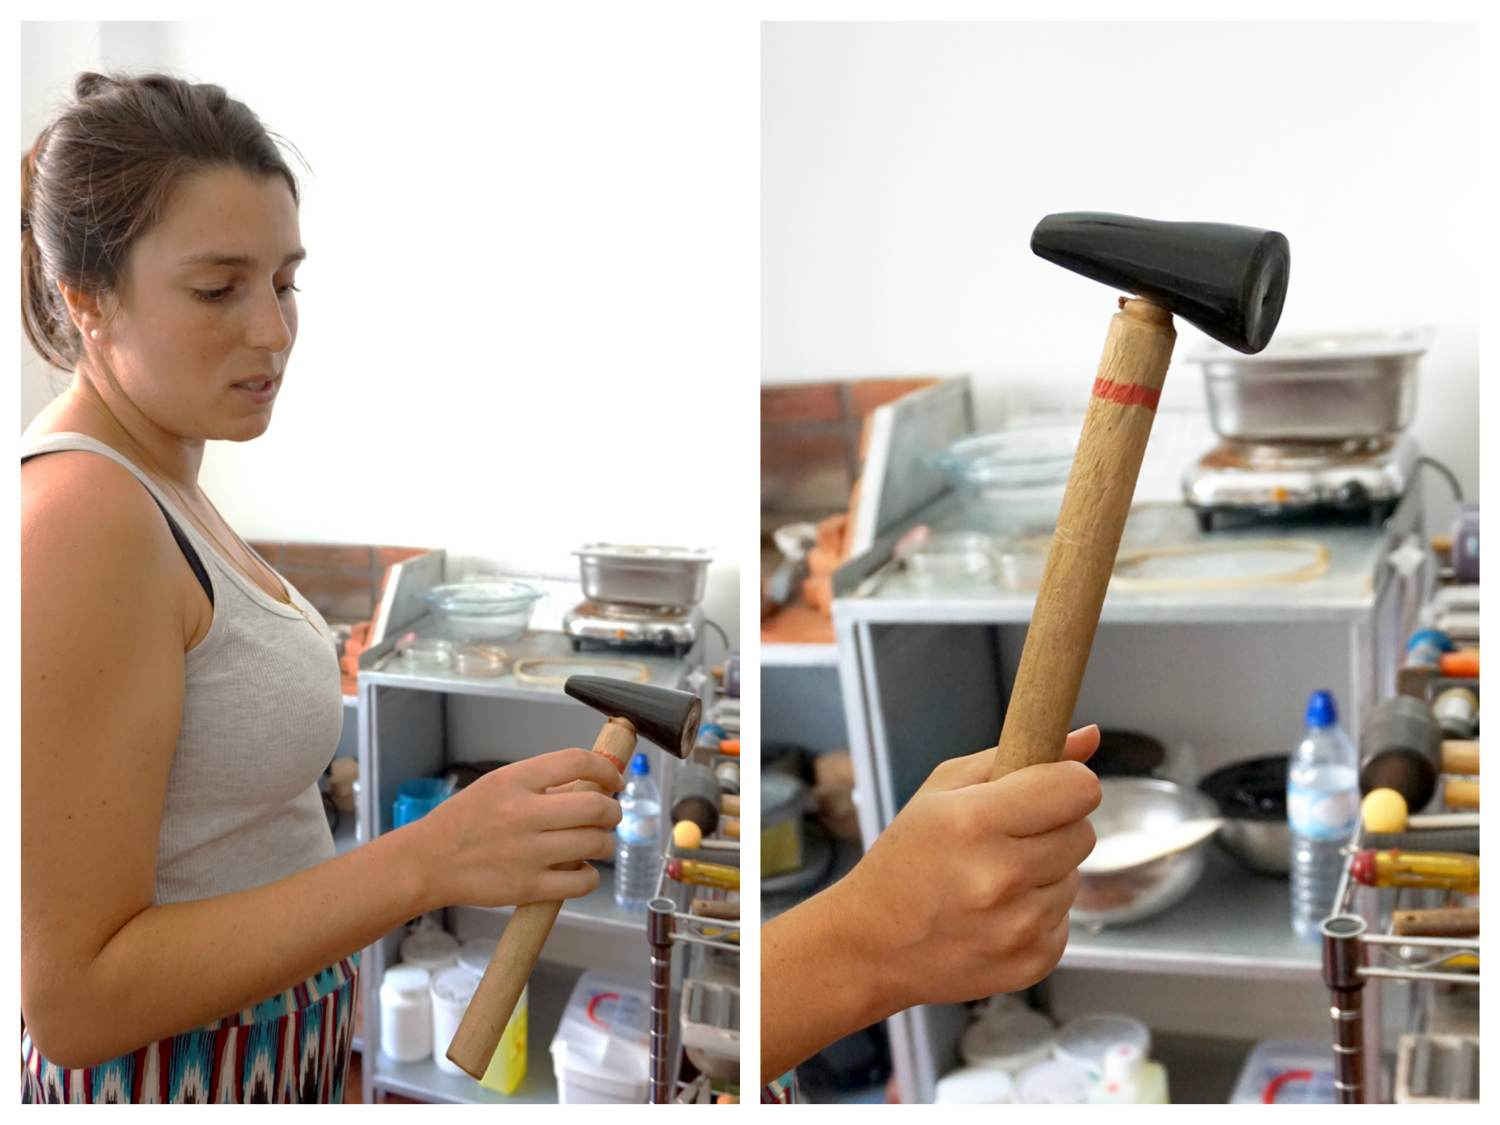 I think that she also likes the hammer...